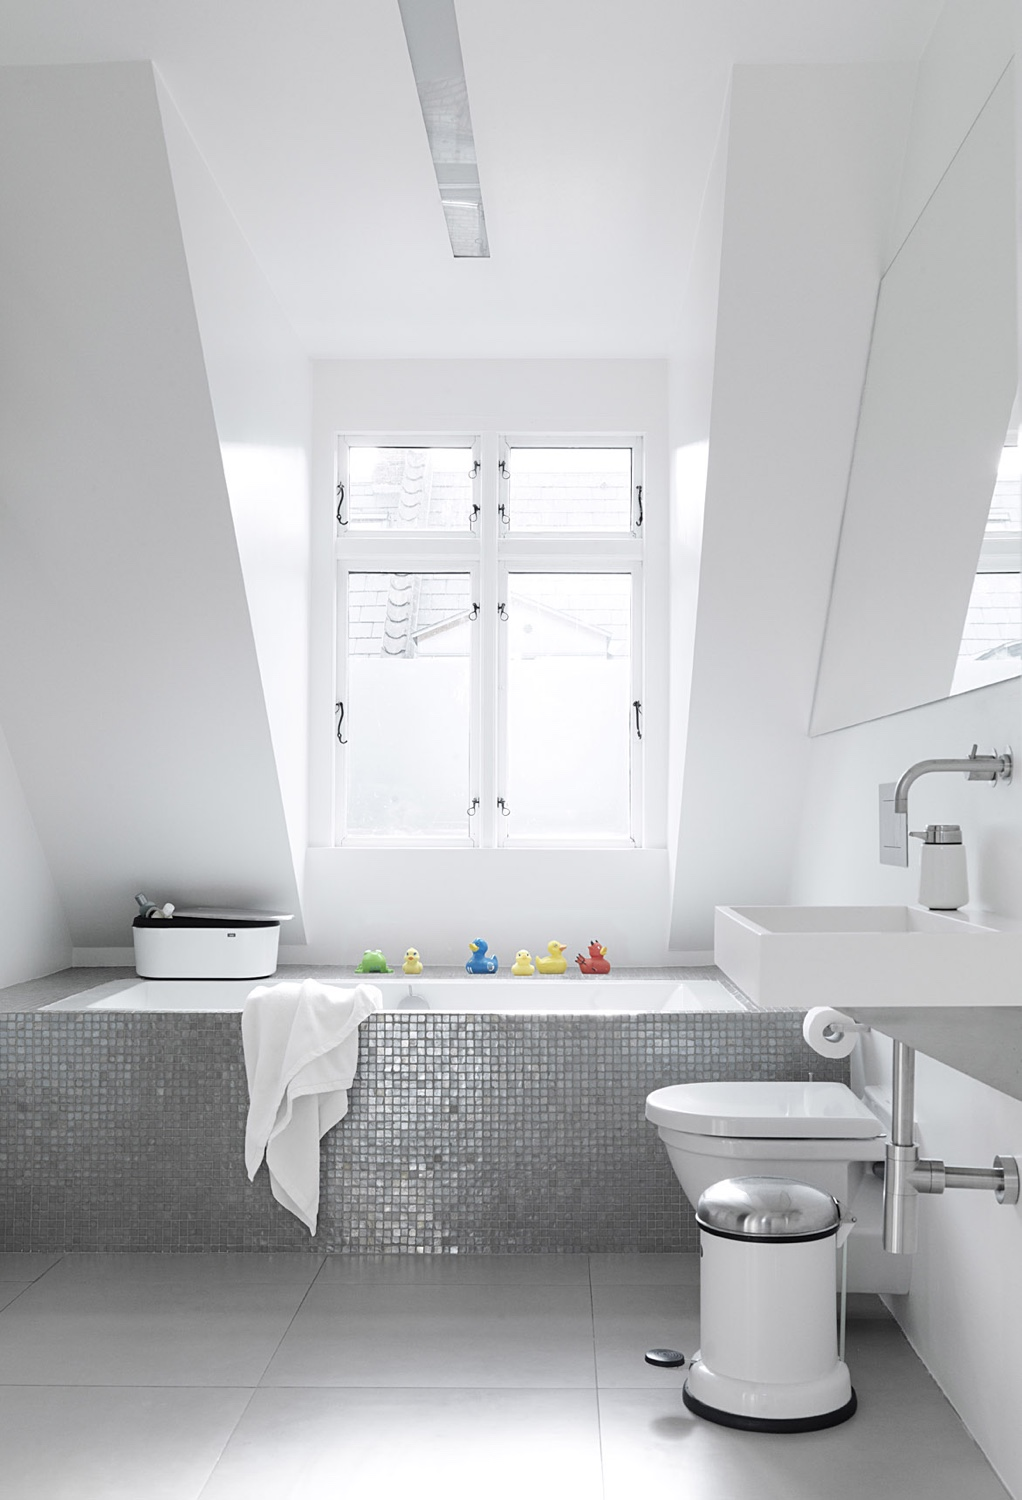 Vipp products bathroom, including the Vipp pedal bin and soap dispenser. Image © Vipp.